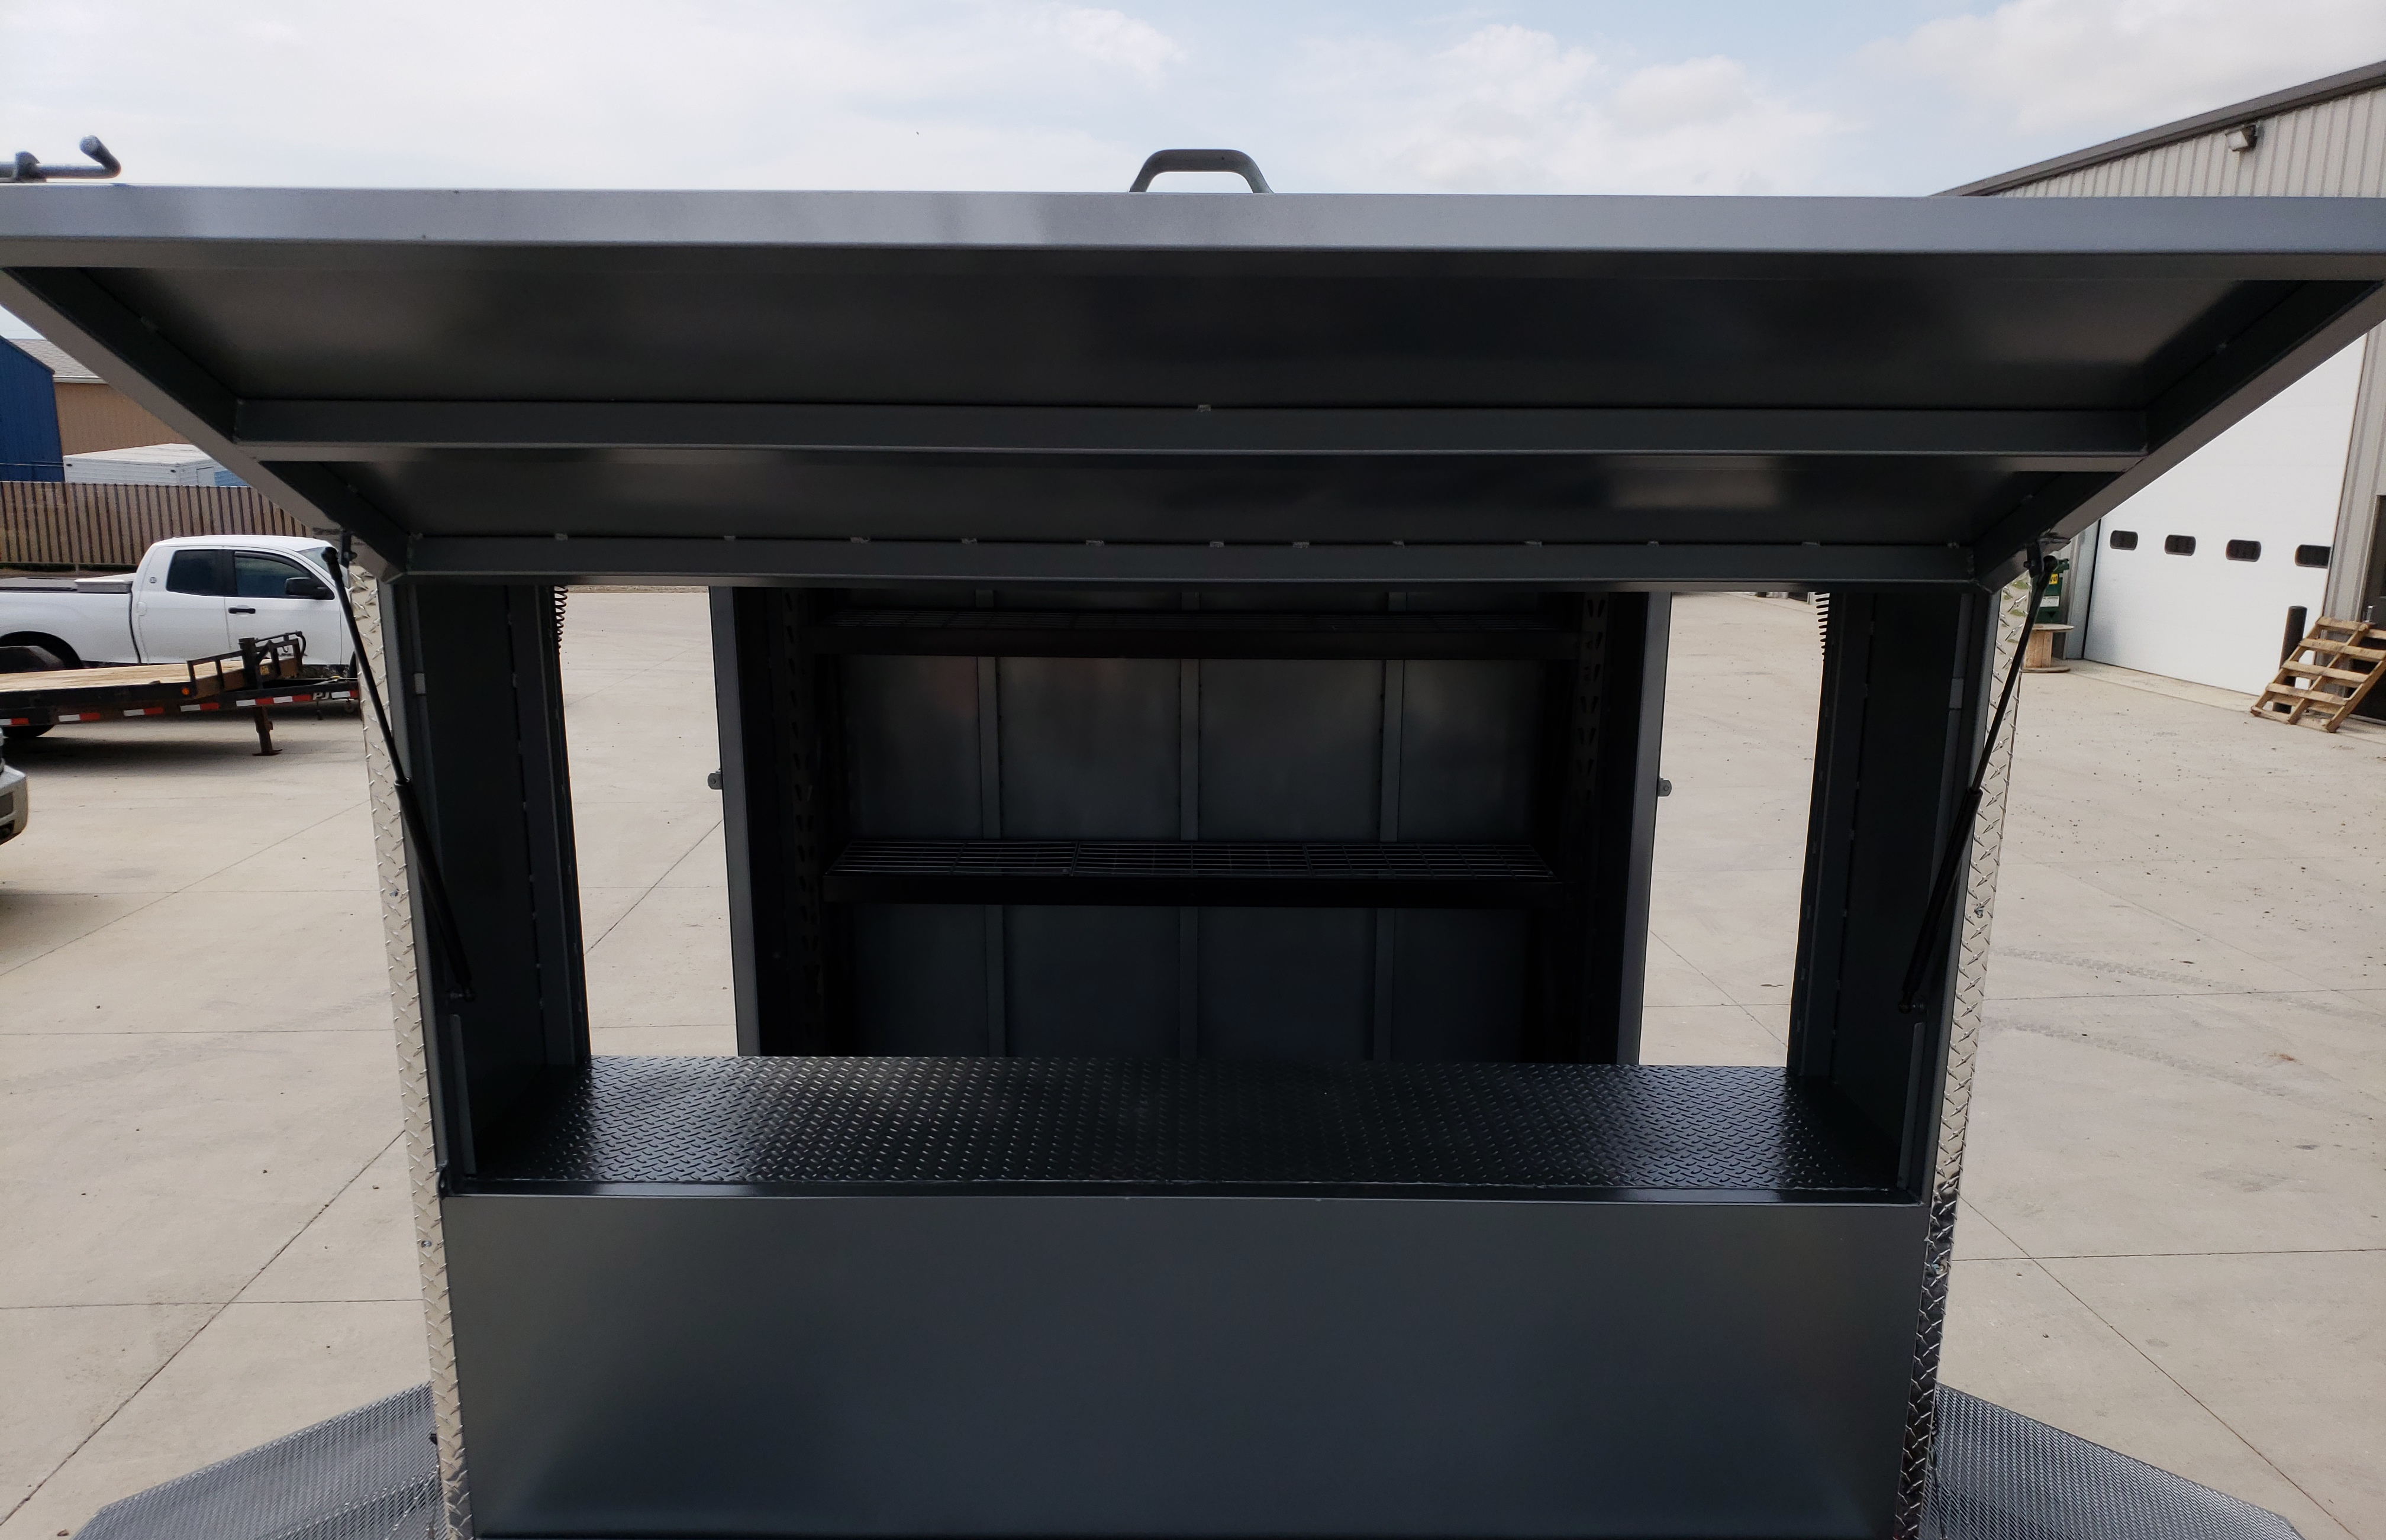 Rear Access to Materials